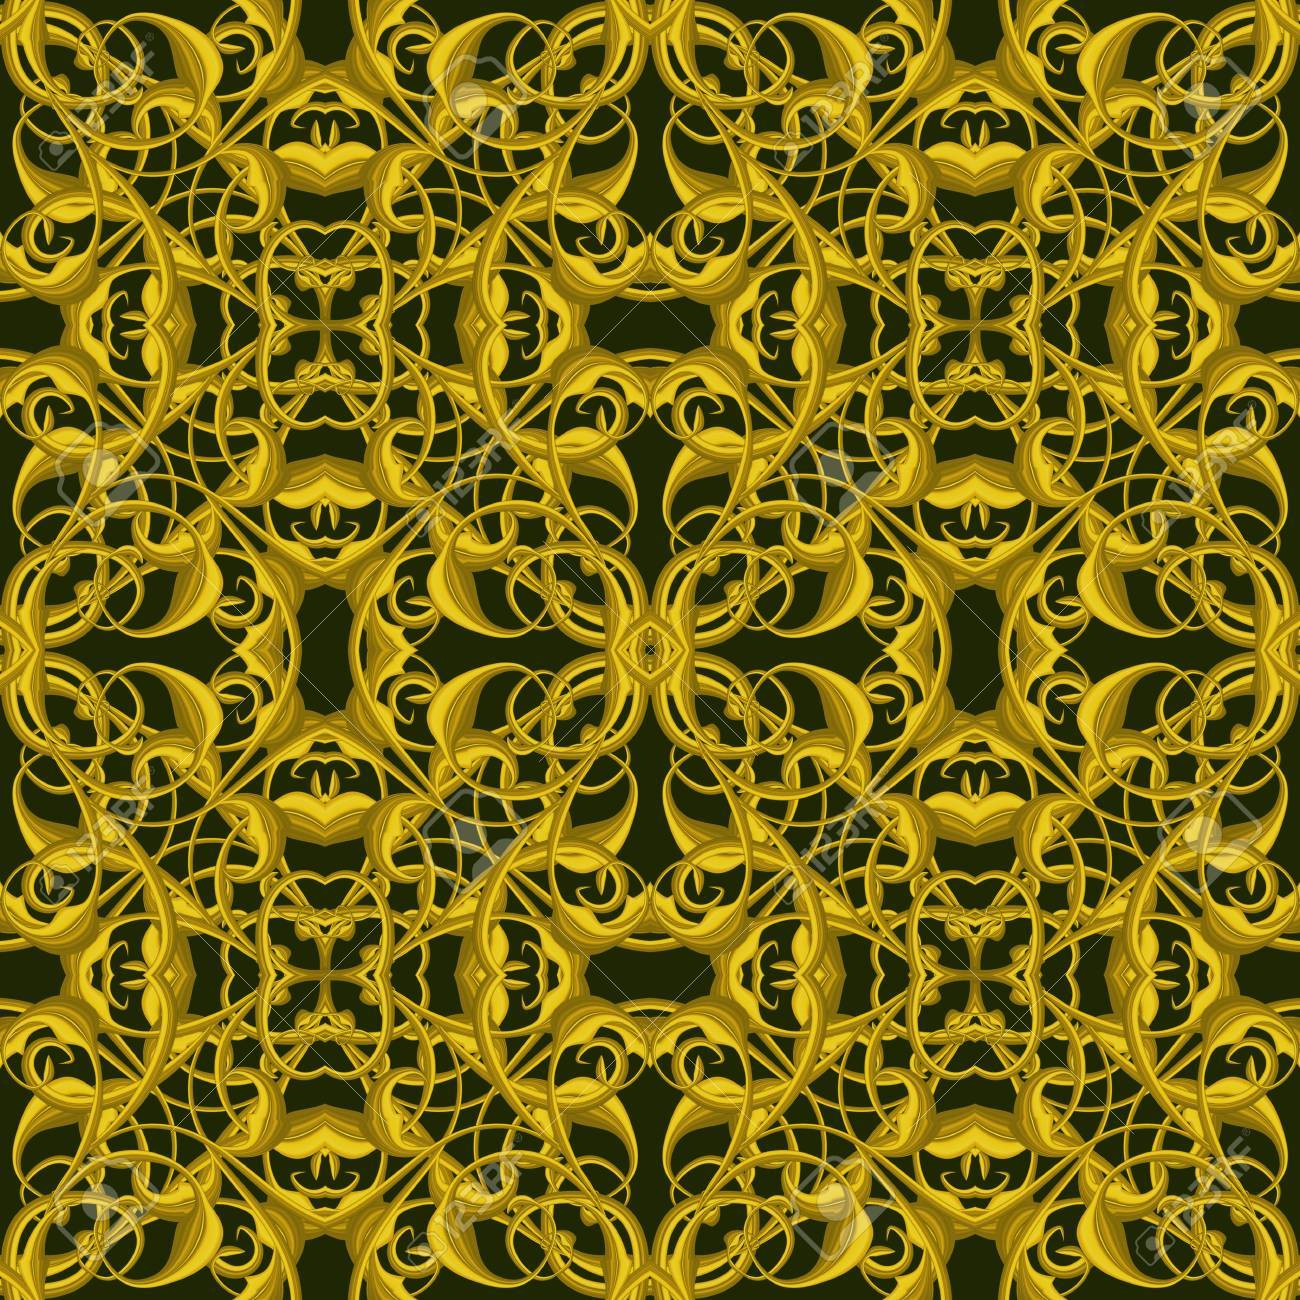 Fantasy Golden Pattern With Fantastic Foliage Elements For Decor ...